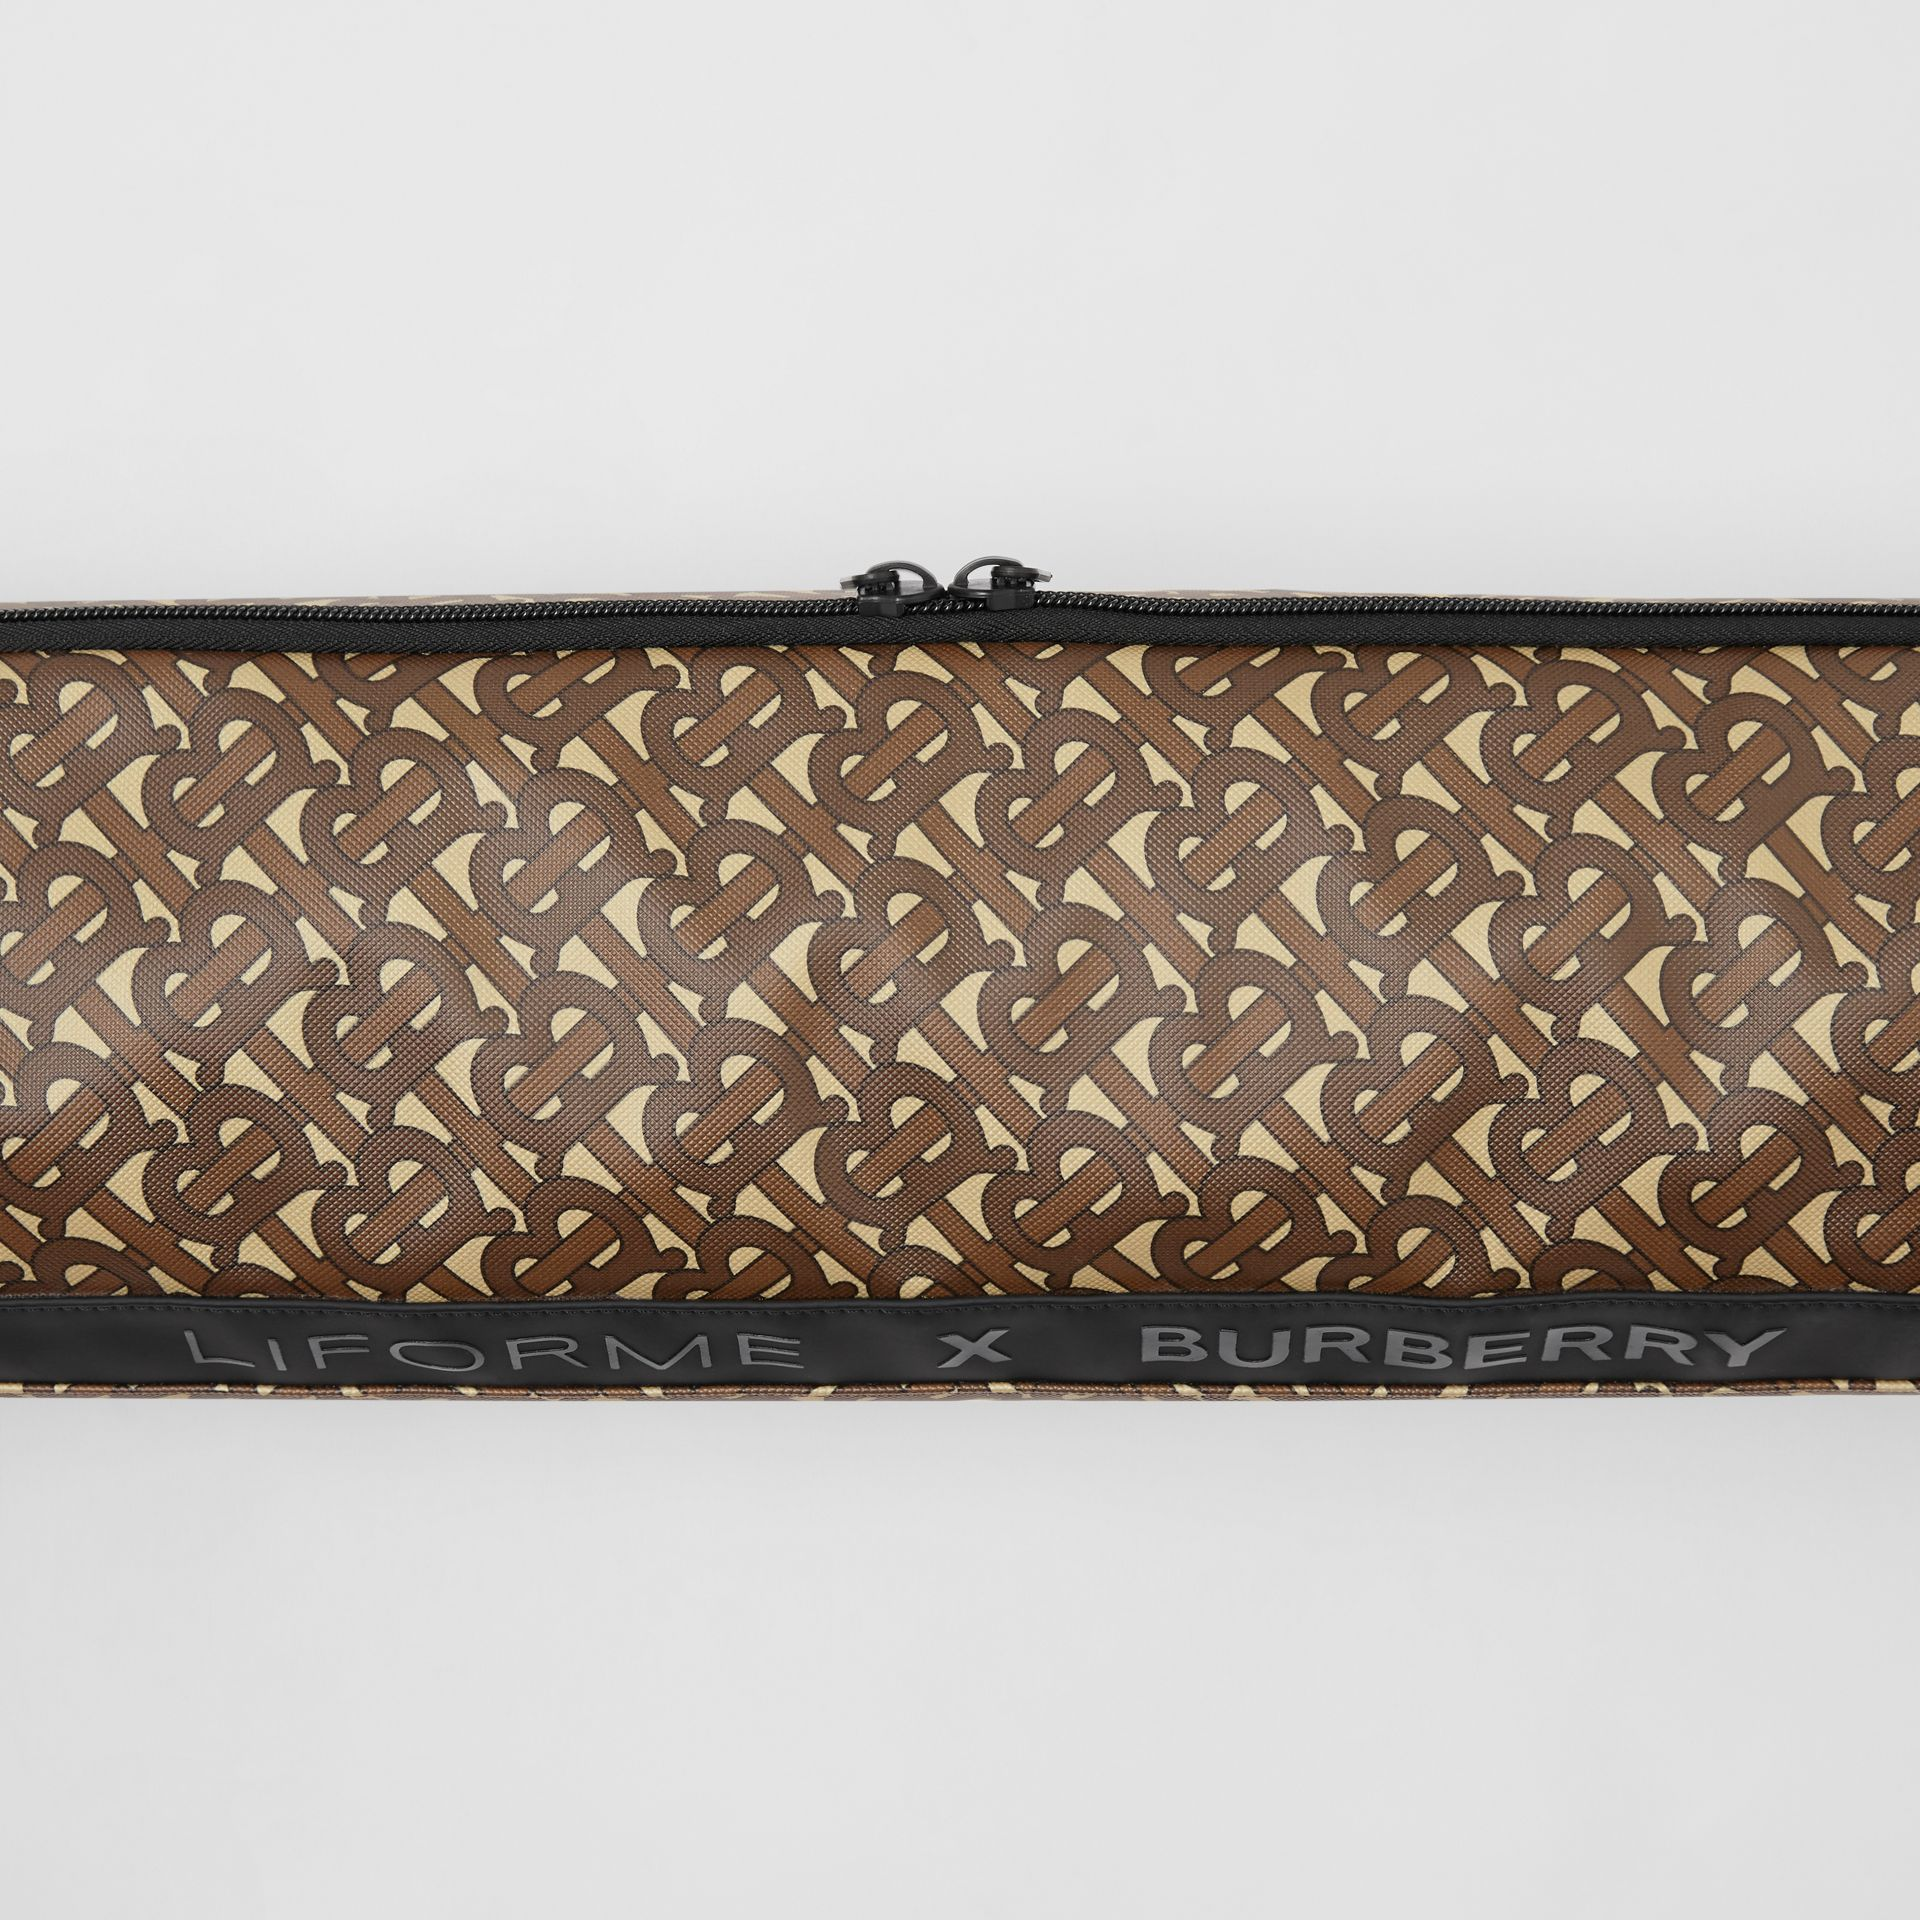 Liforme x Burberry Monogram Motif Yoga Mat in Bridle Brown | Burberry Singapore - gallery image 4